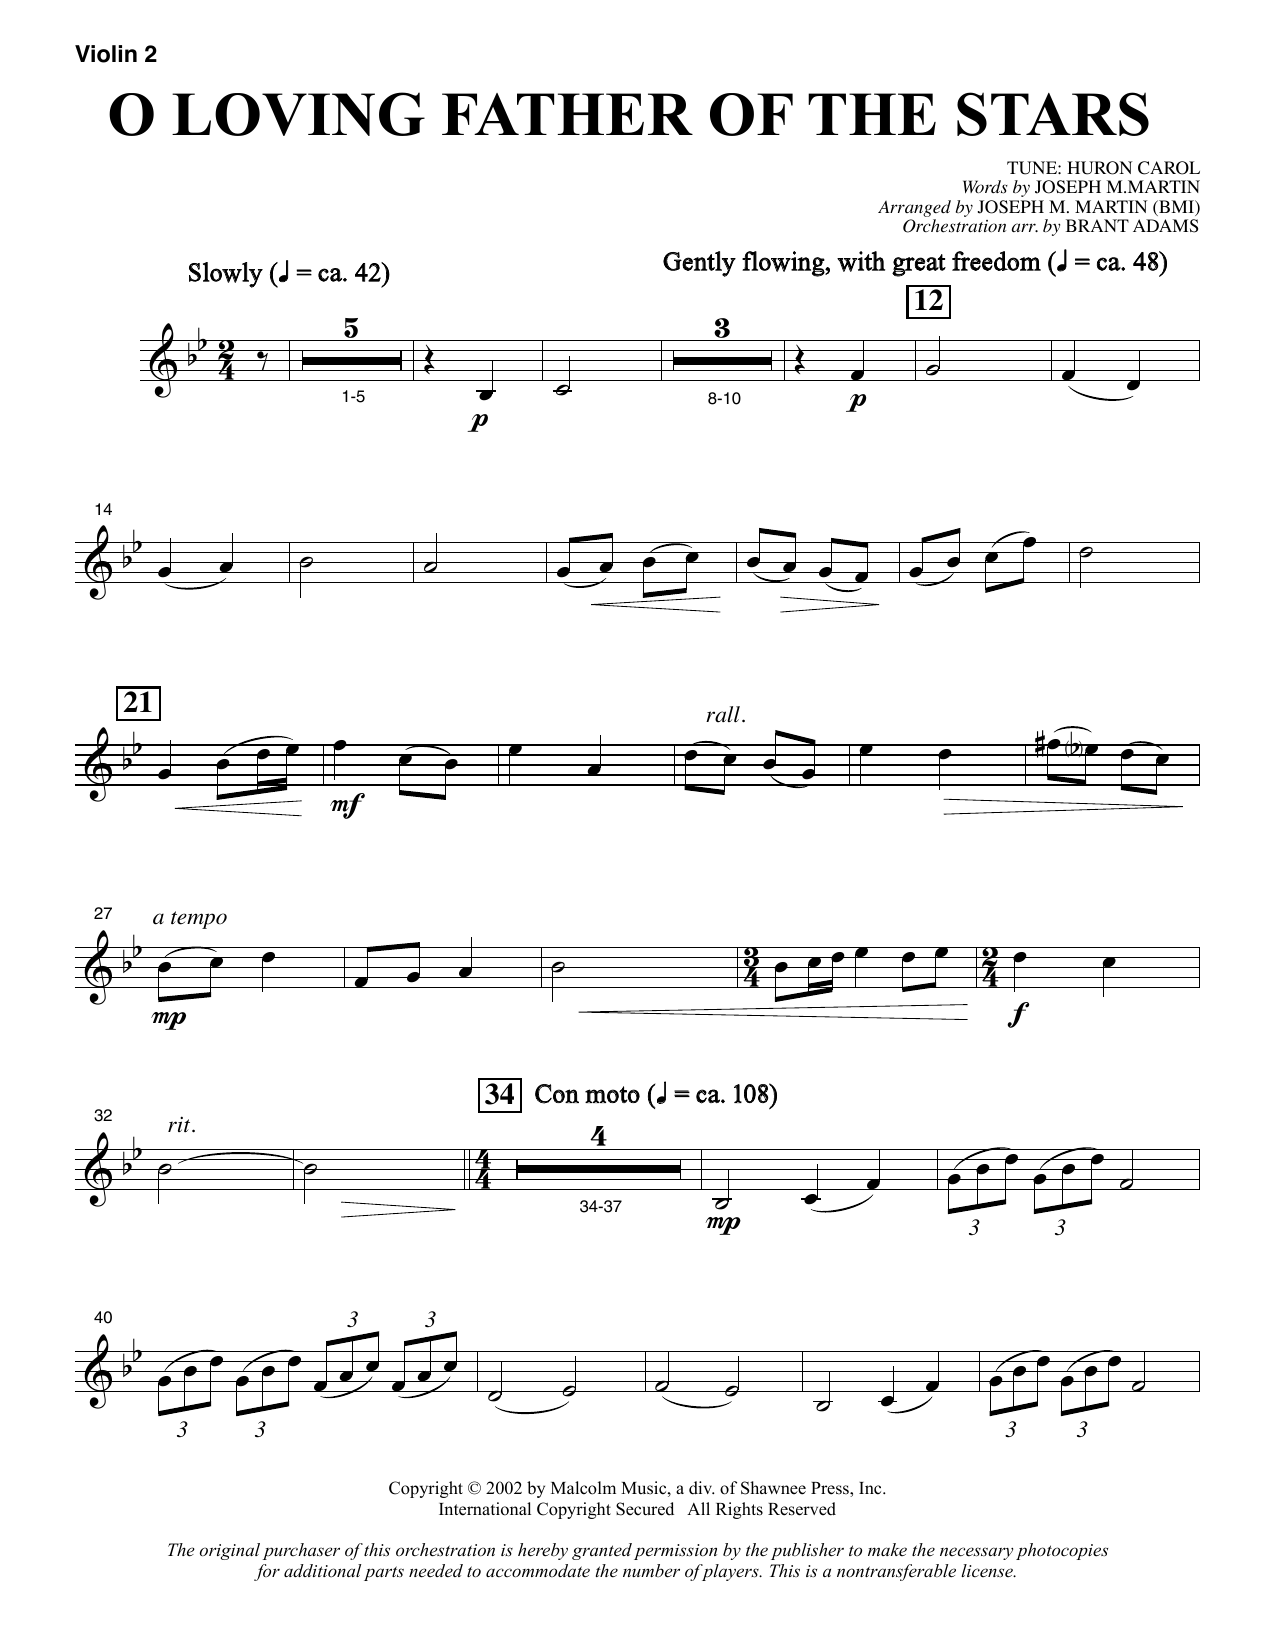 Joseph M. Martin O Loving Father Of The Stars (from Morning Star) - Violin 2 sheet music notes and chords. Download Printable PDF.